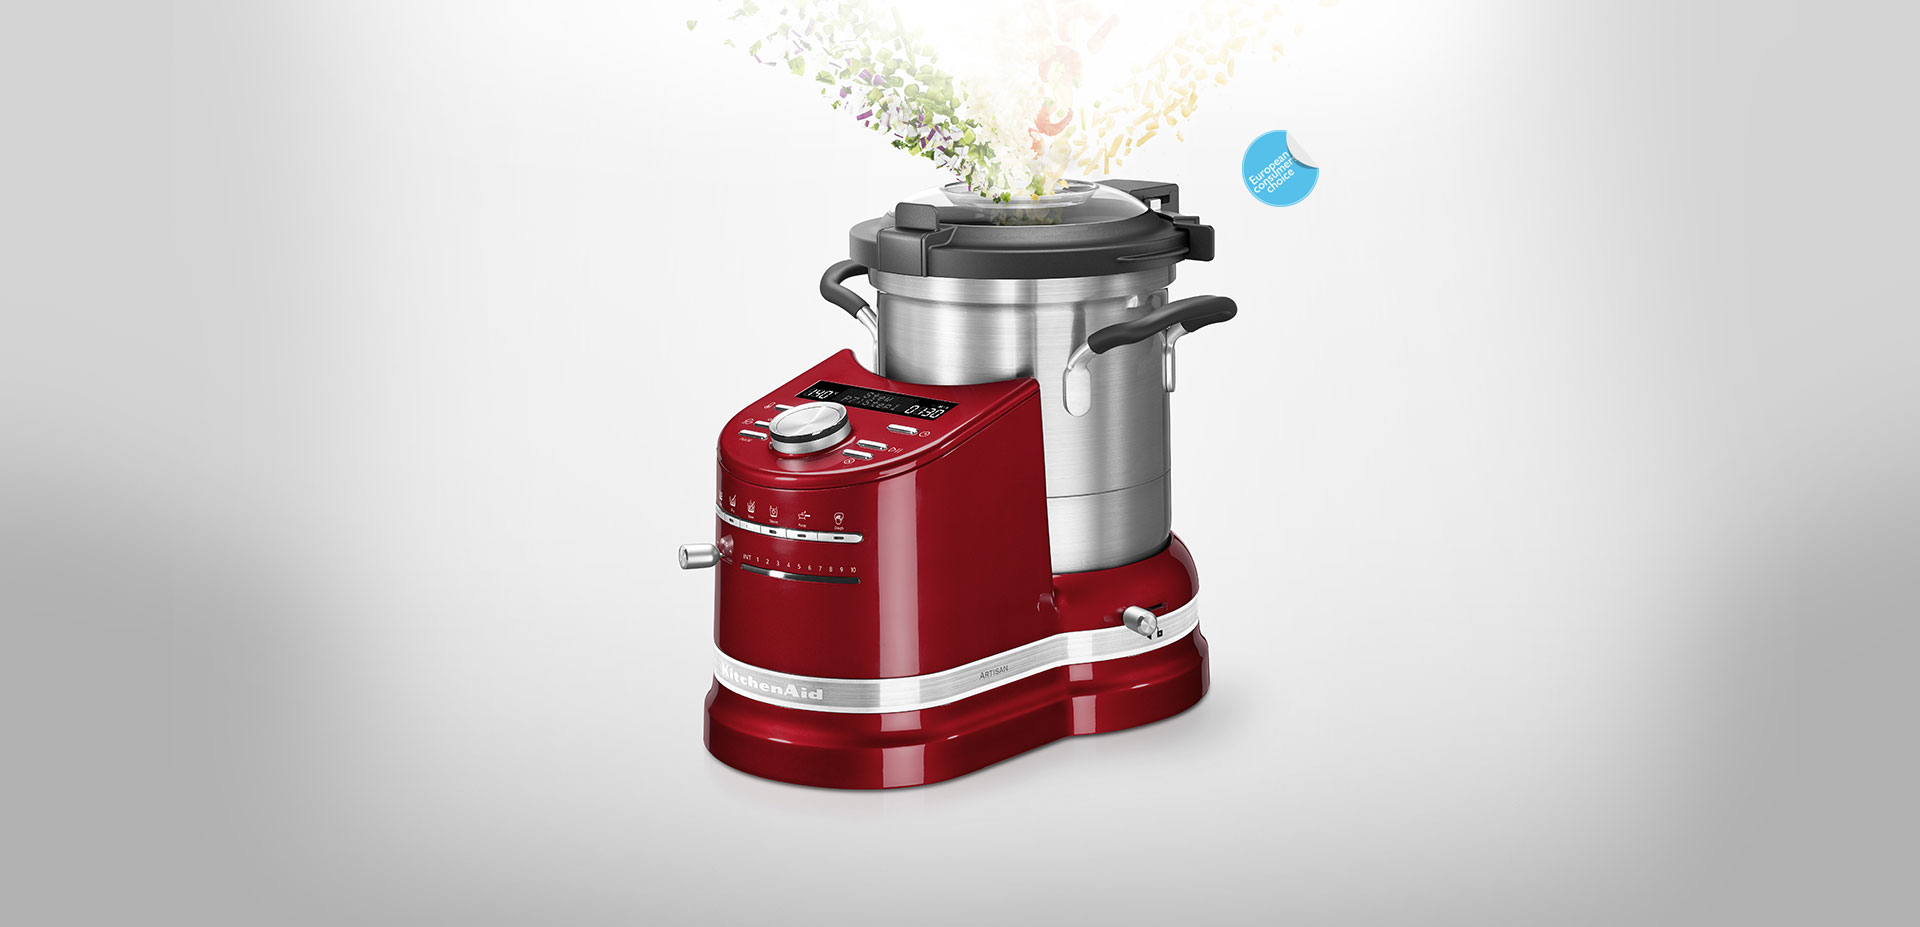 Ausziehbett Netto Ricette Kitchenaid Cook Processor